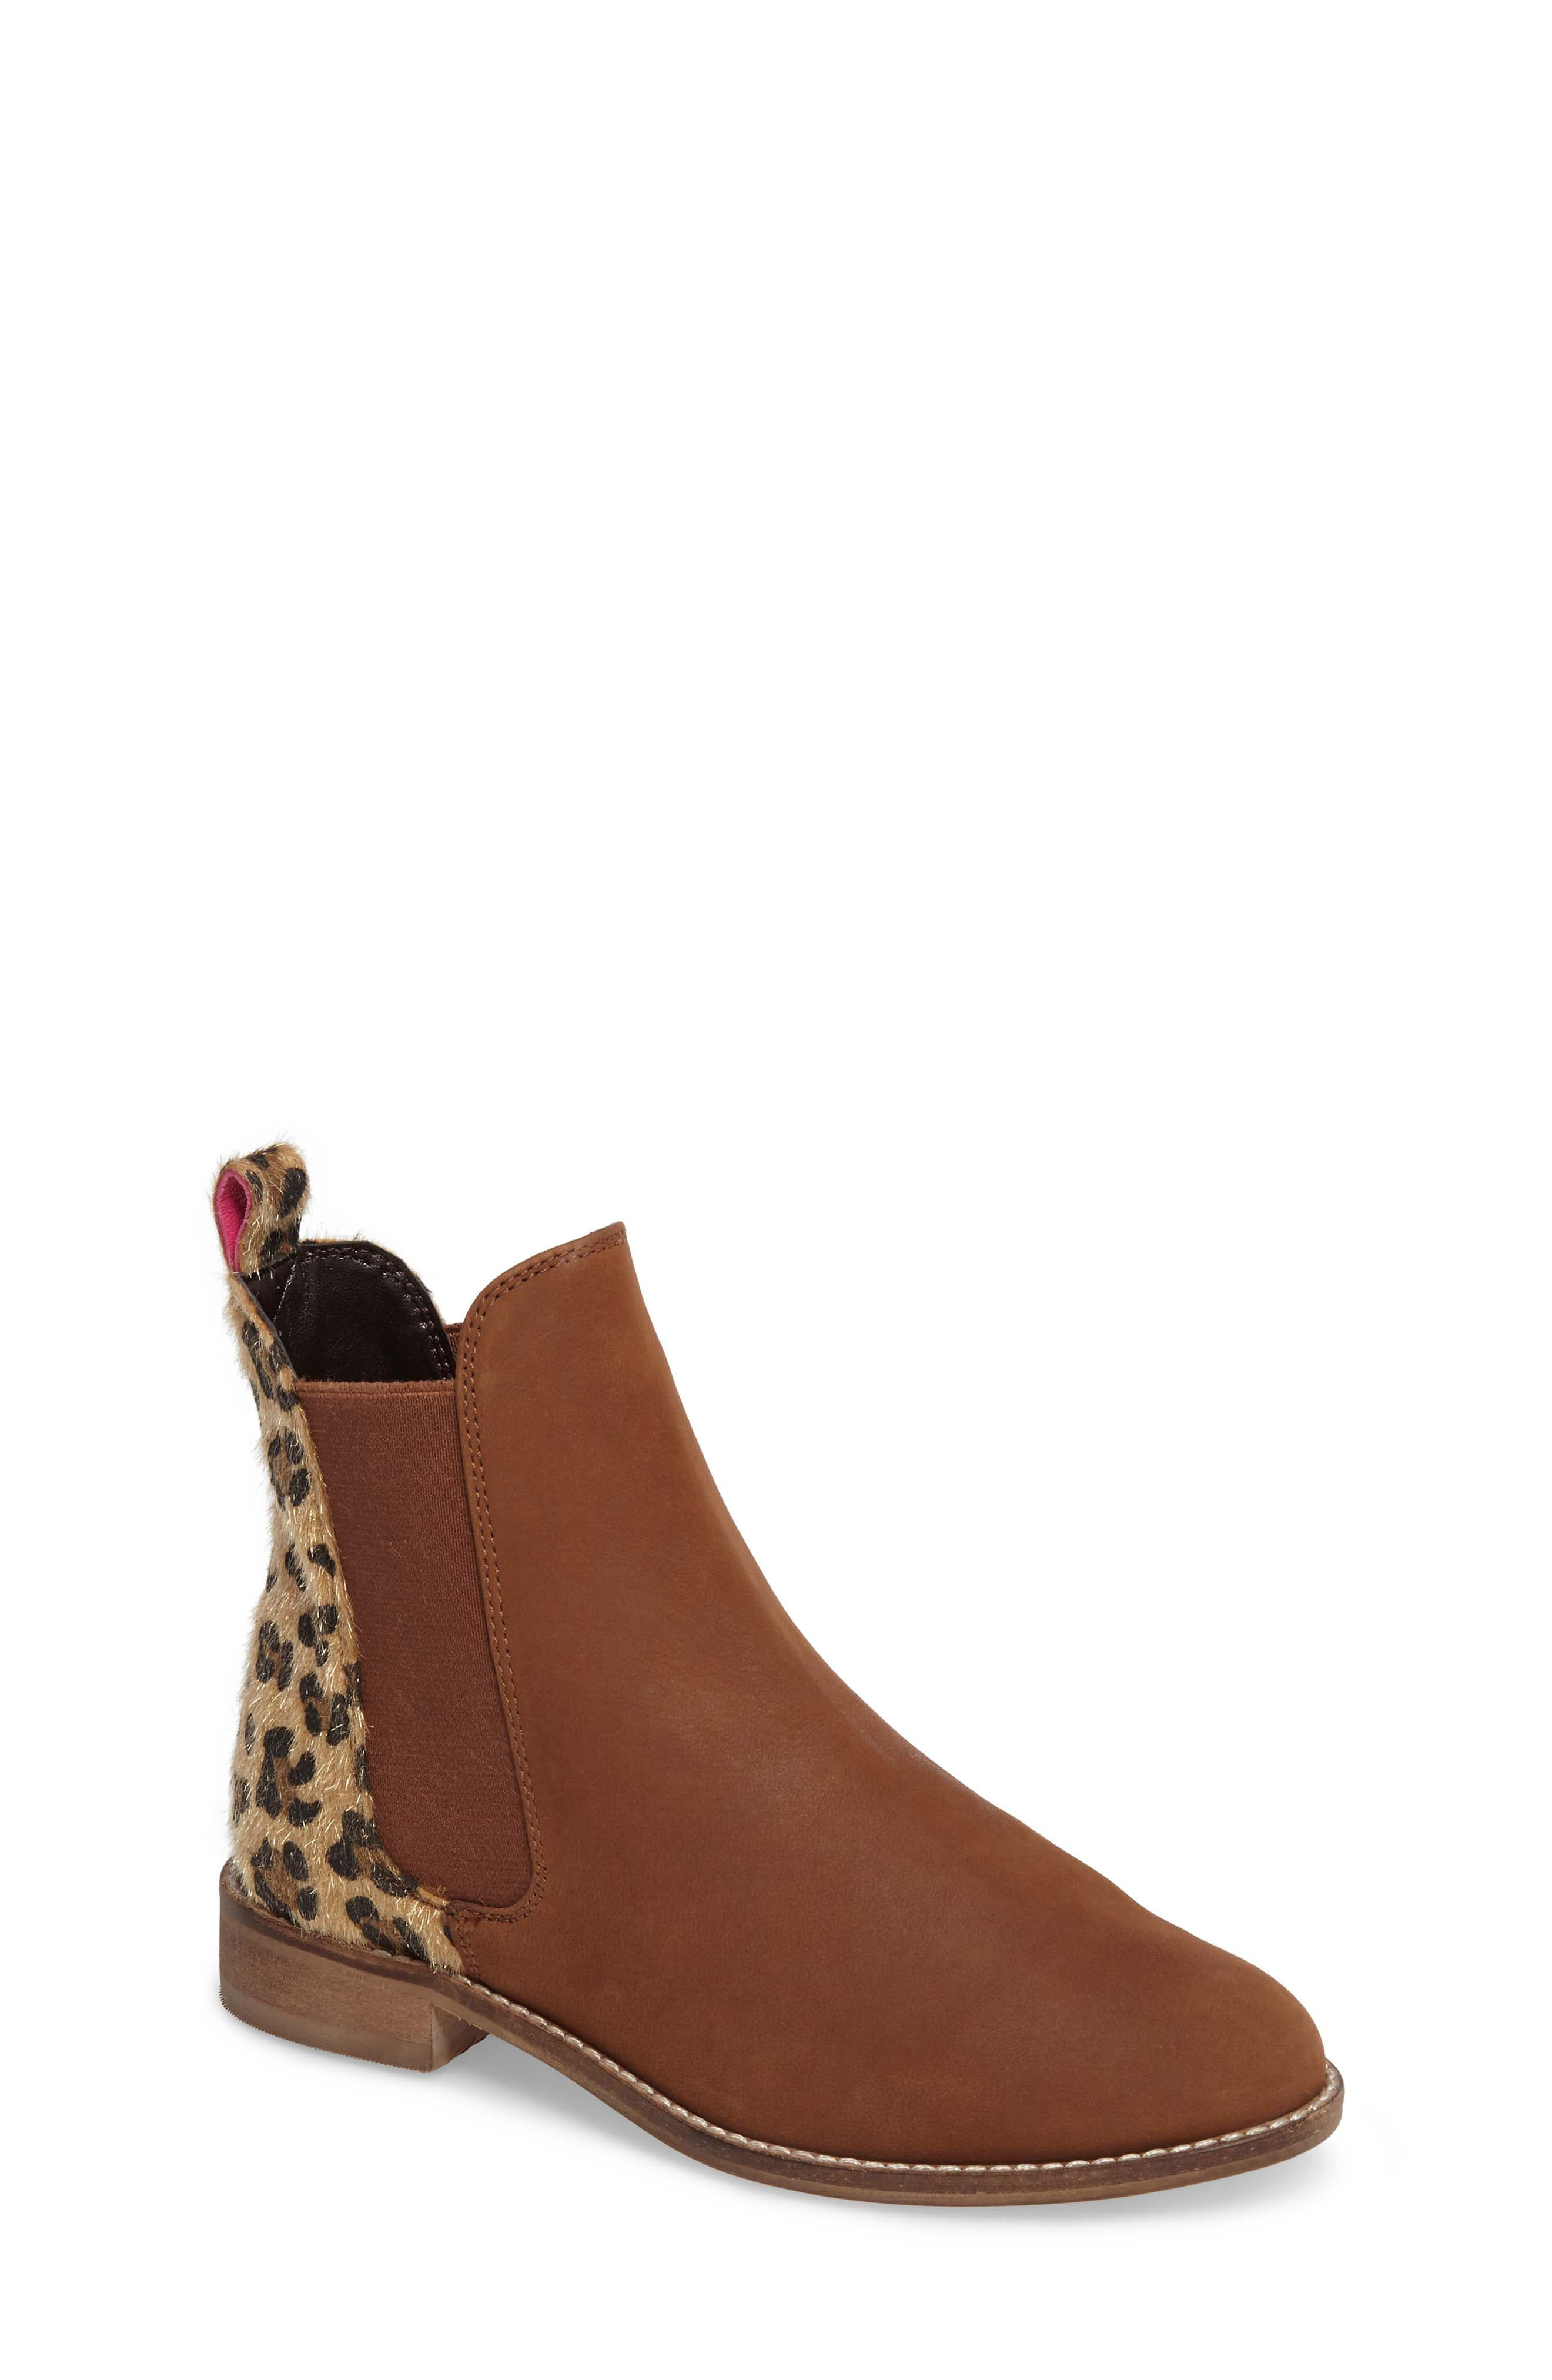 Chelsea Boot,                         Main,                         color, 201